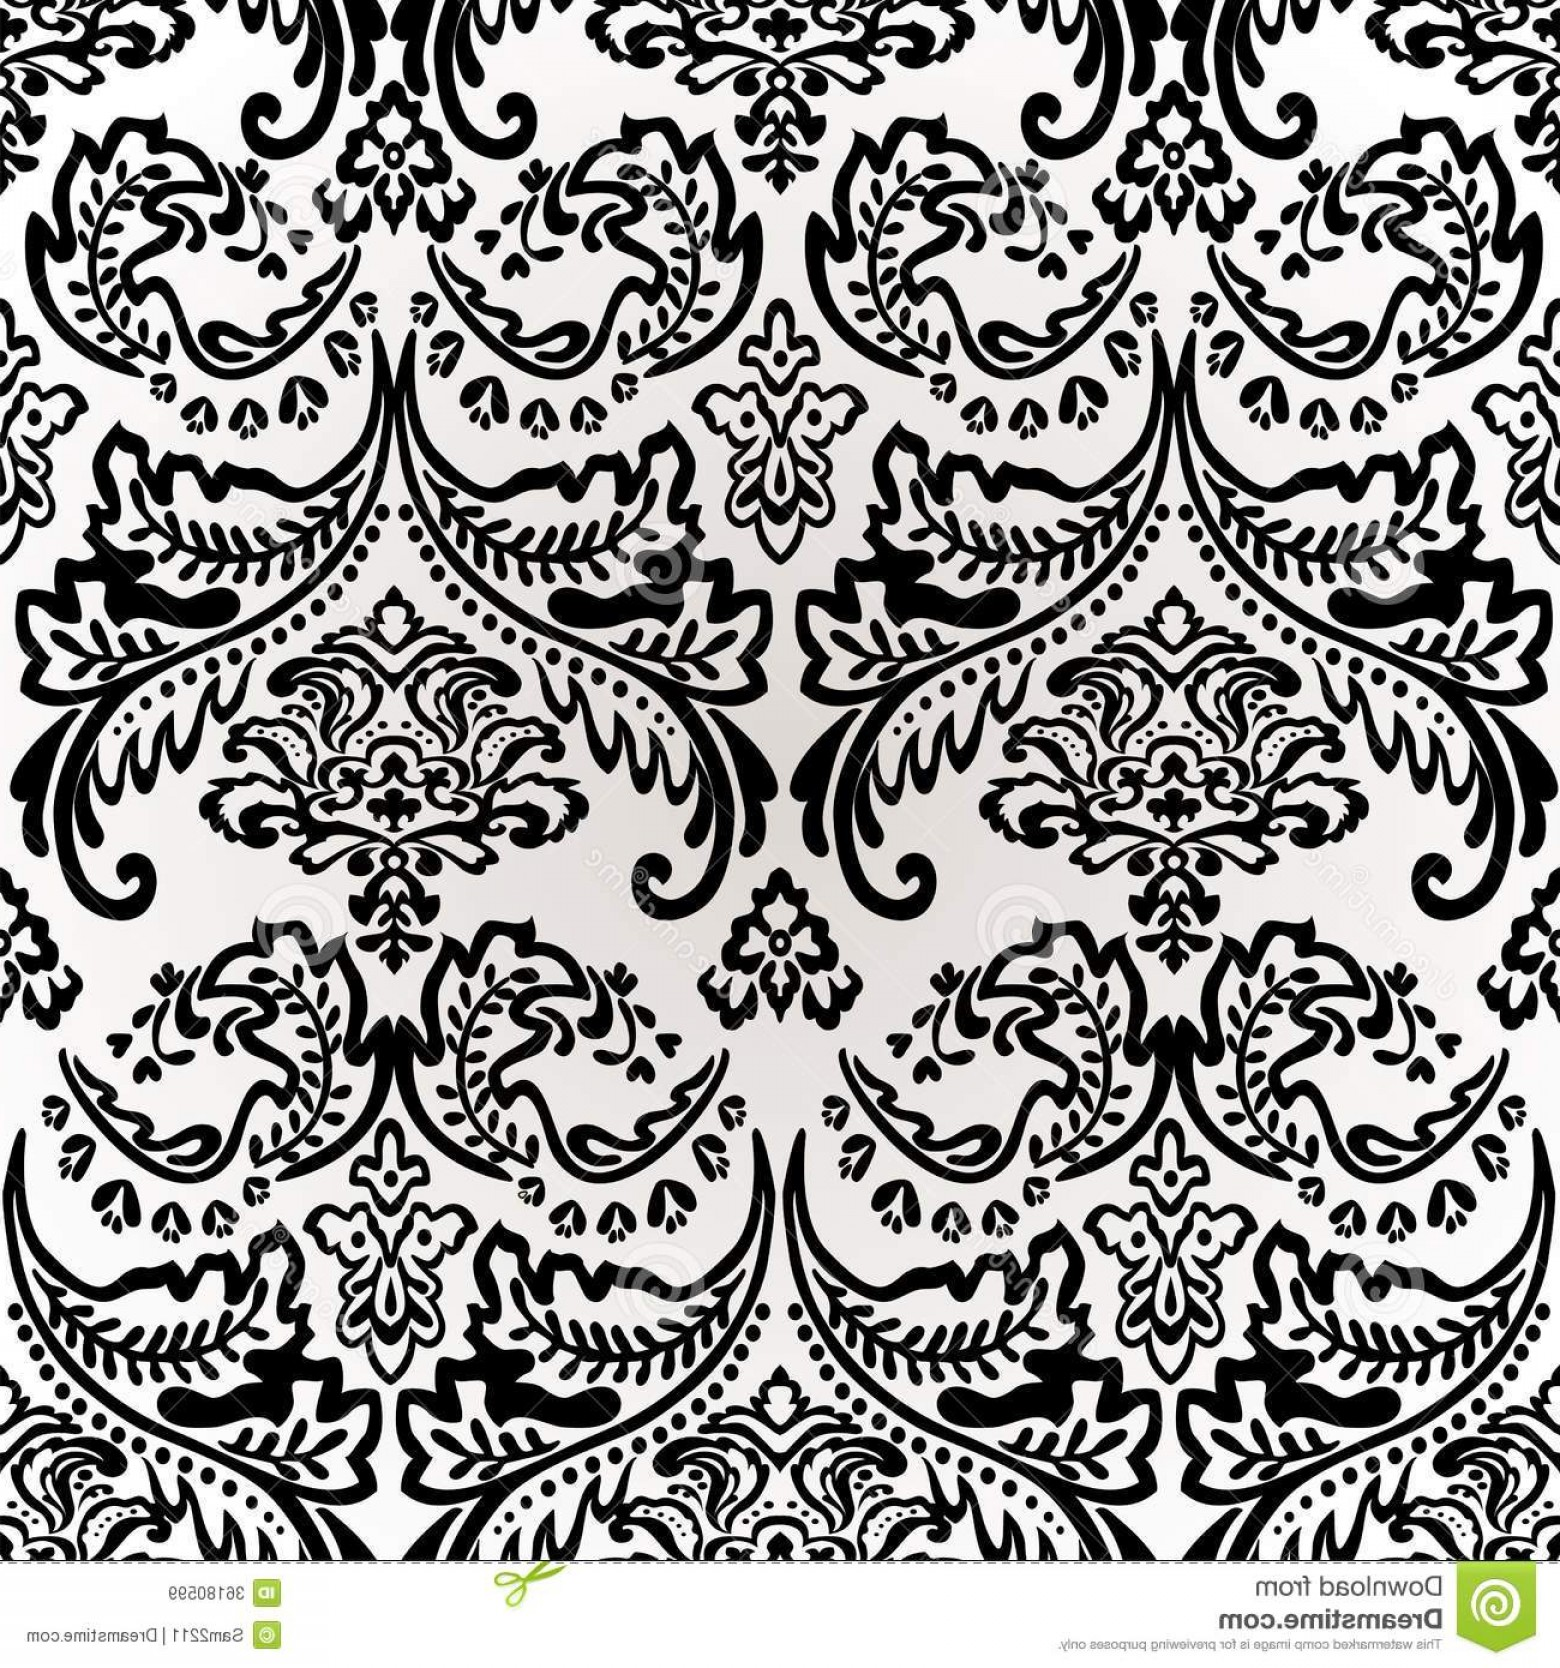 Damask Background Vector Art: Royalty Free Stock Images Damask Vintage Floral Seamless Pattern Background Vector Illustration Image